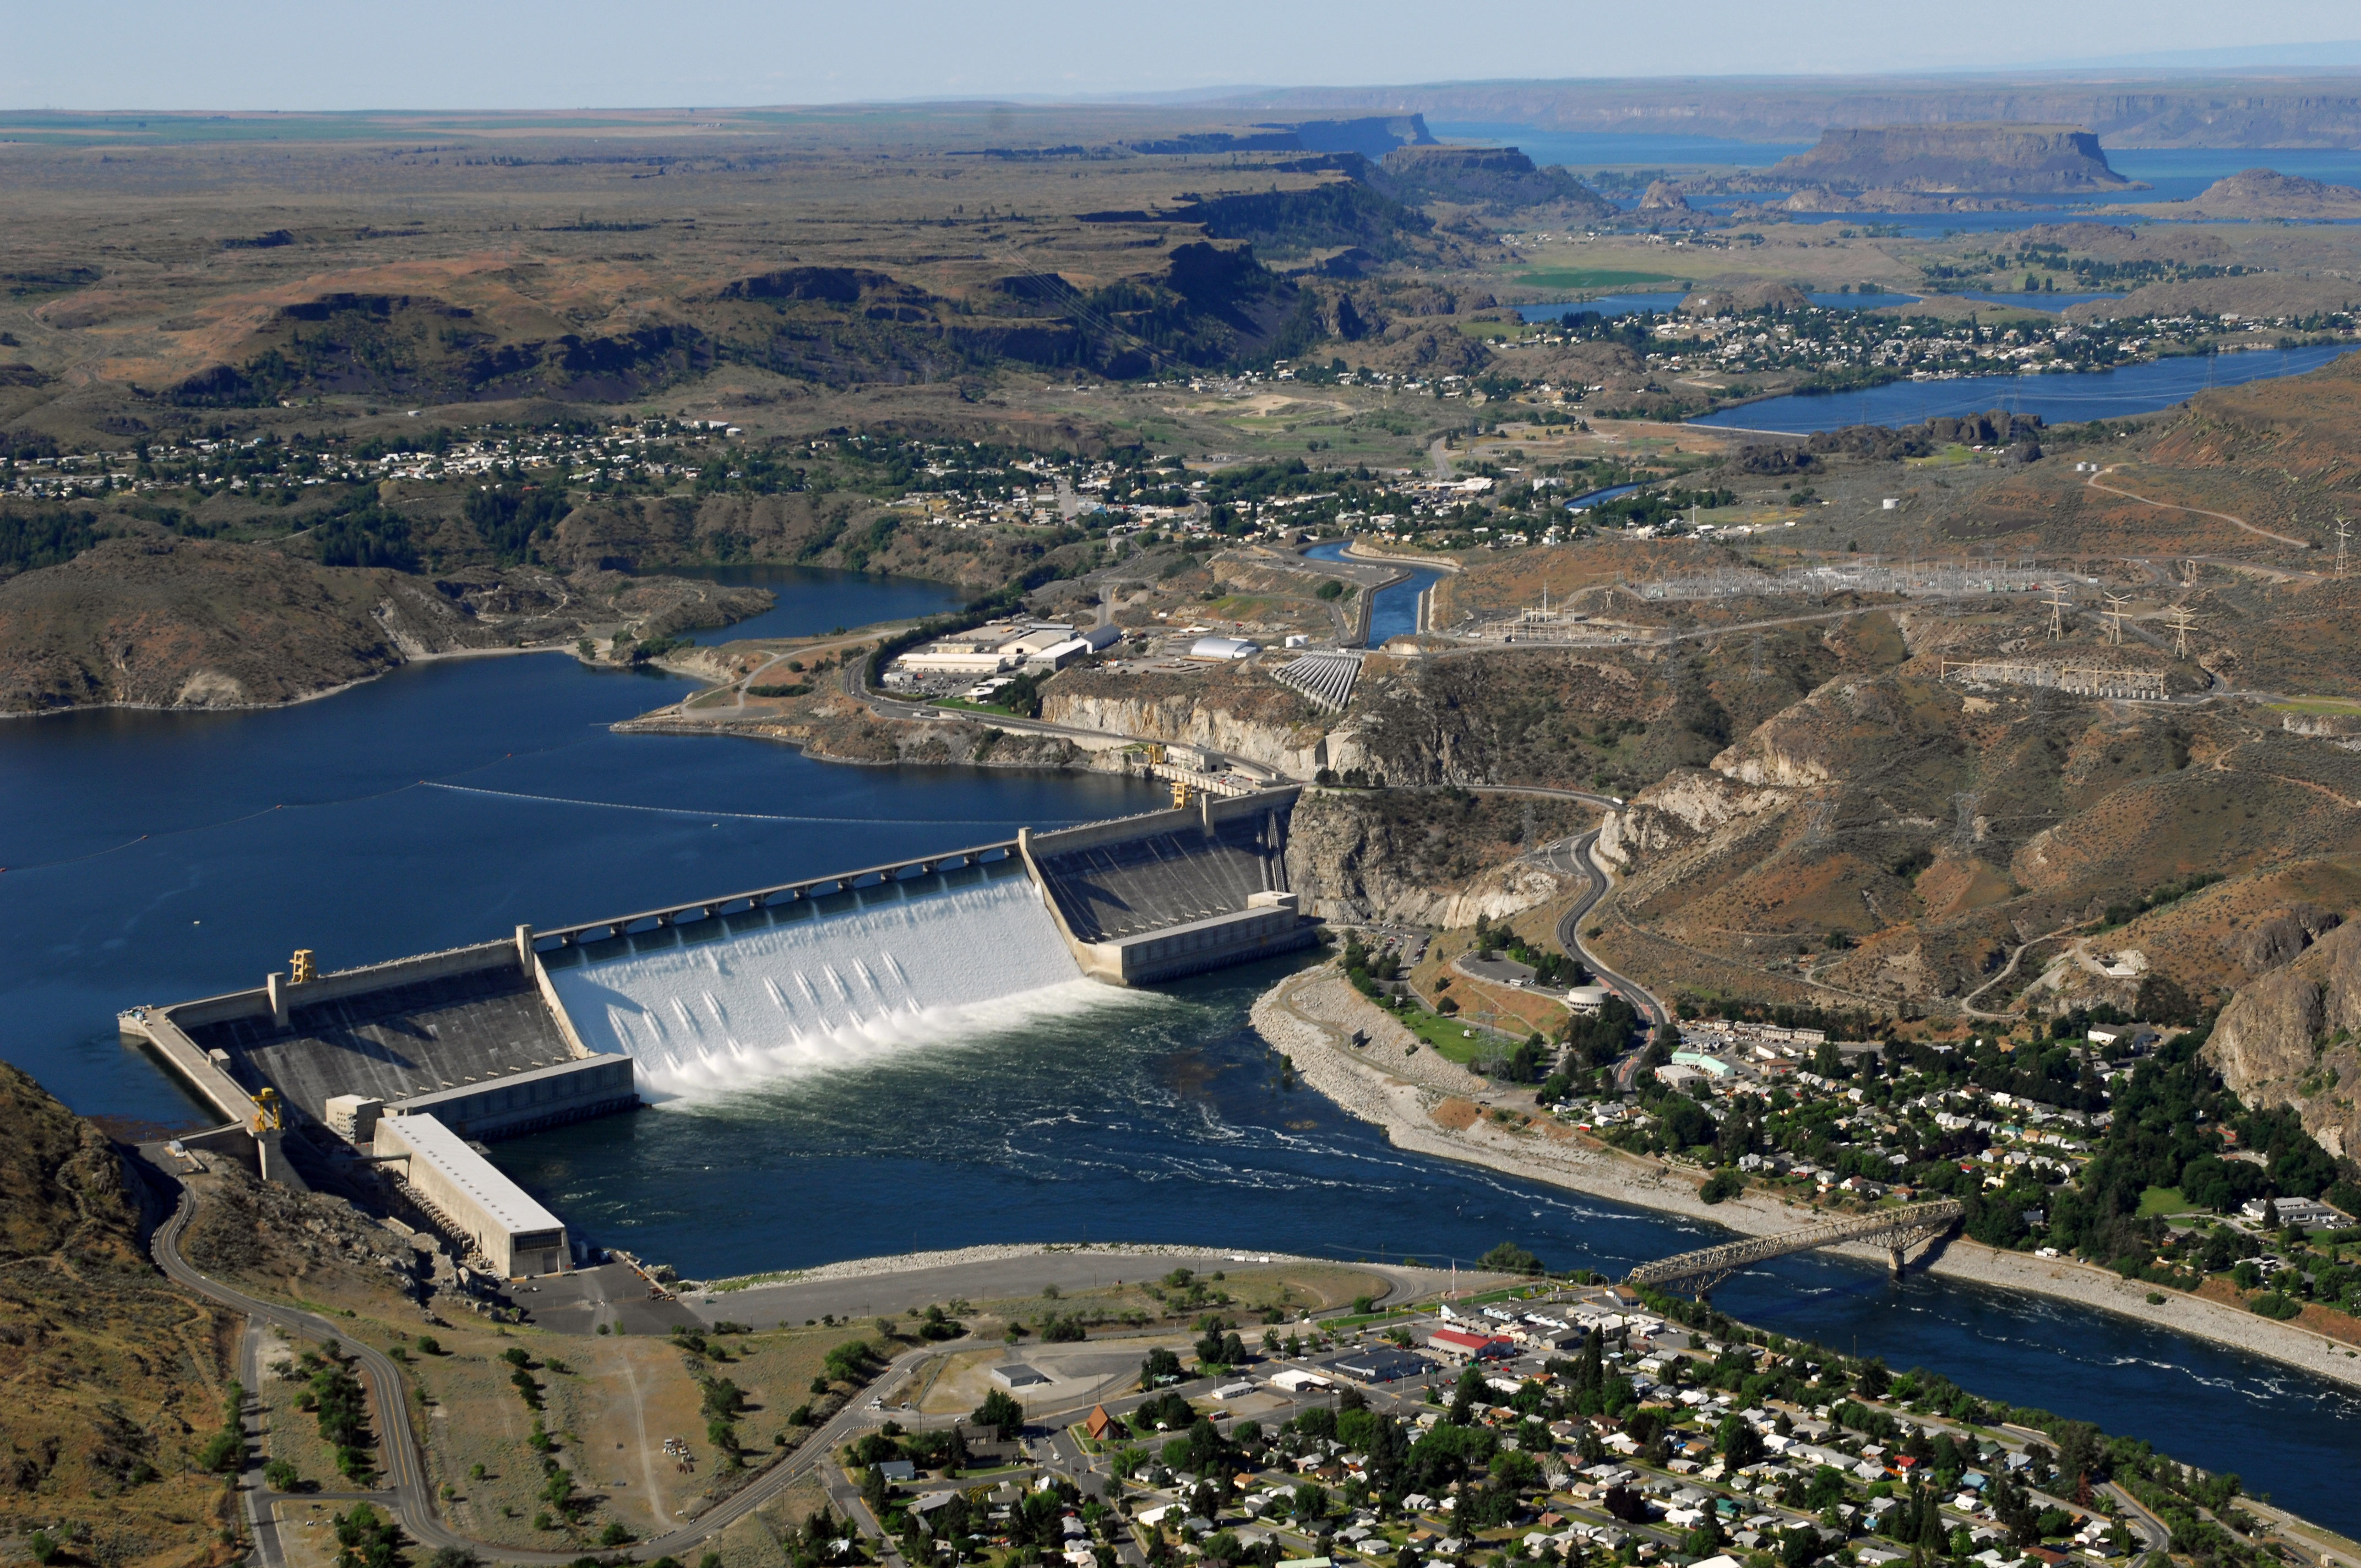 coulee dam hindu single women Pete seeger: guerrilla minstrel  columbia, grand coulee dam, pastures of plenty and several  to the astonishment of passersby, they beheld a single.